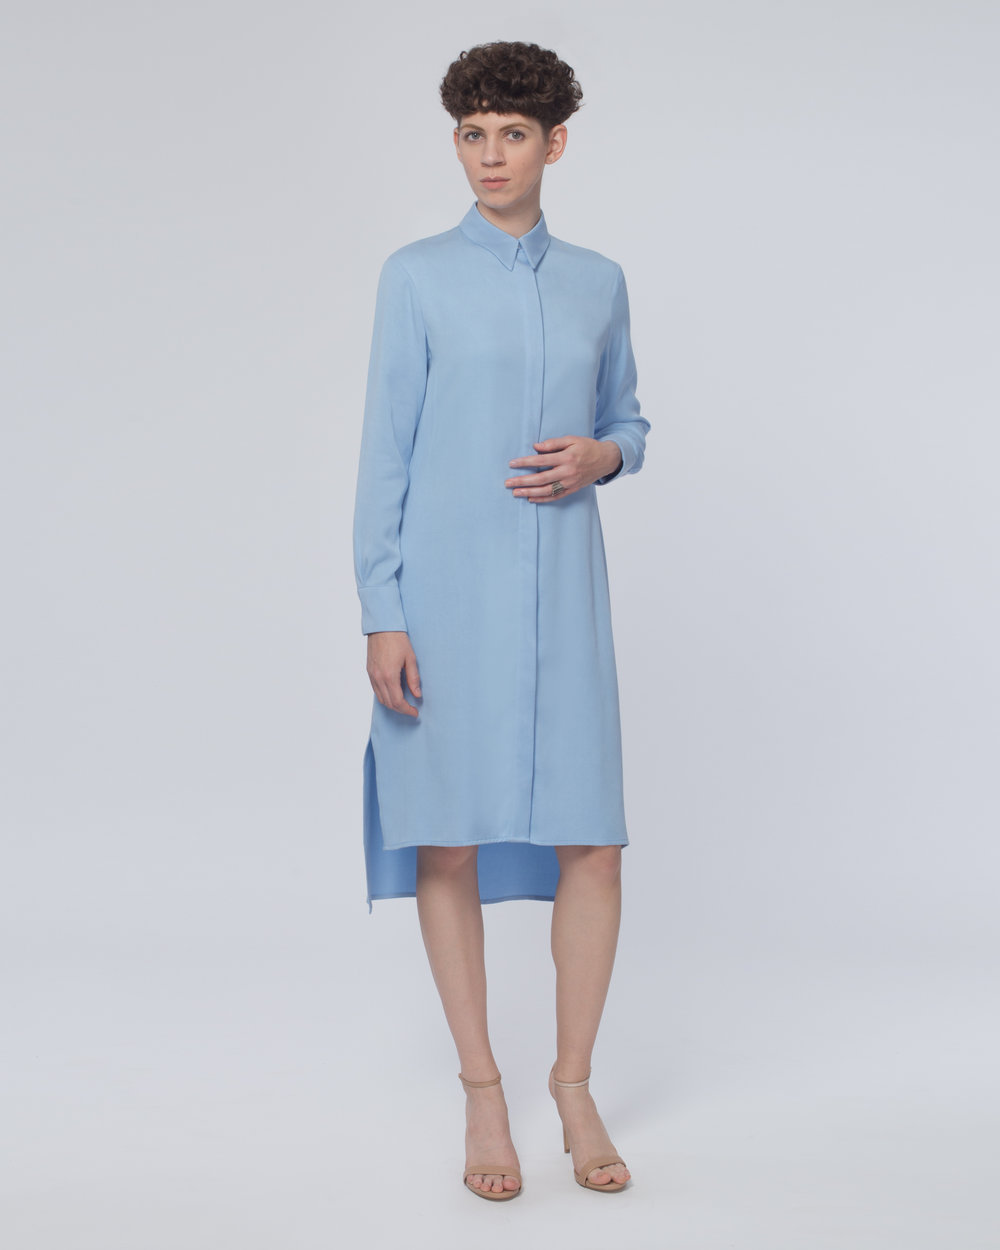 1x1_catalog_hiddenbuttonshirtdress-blue.jpg